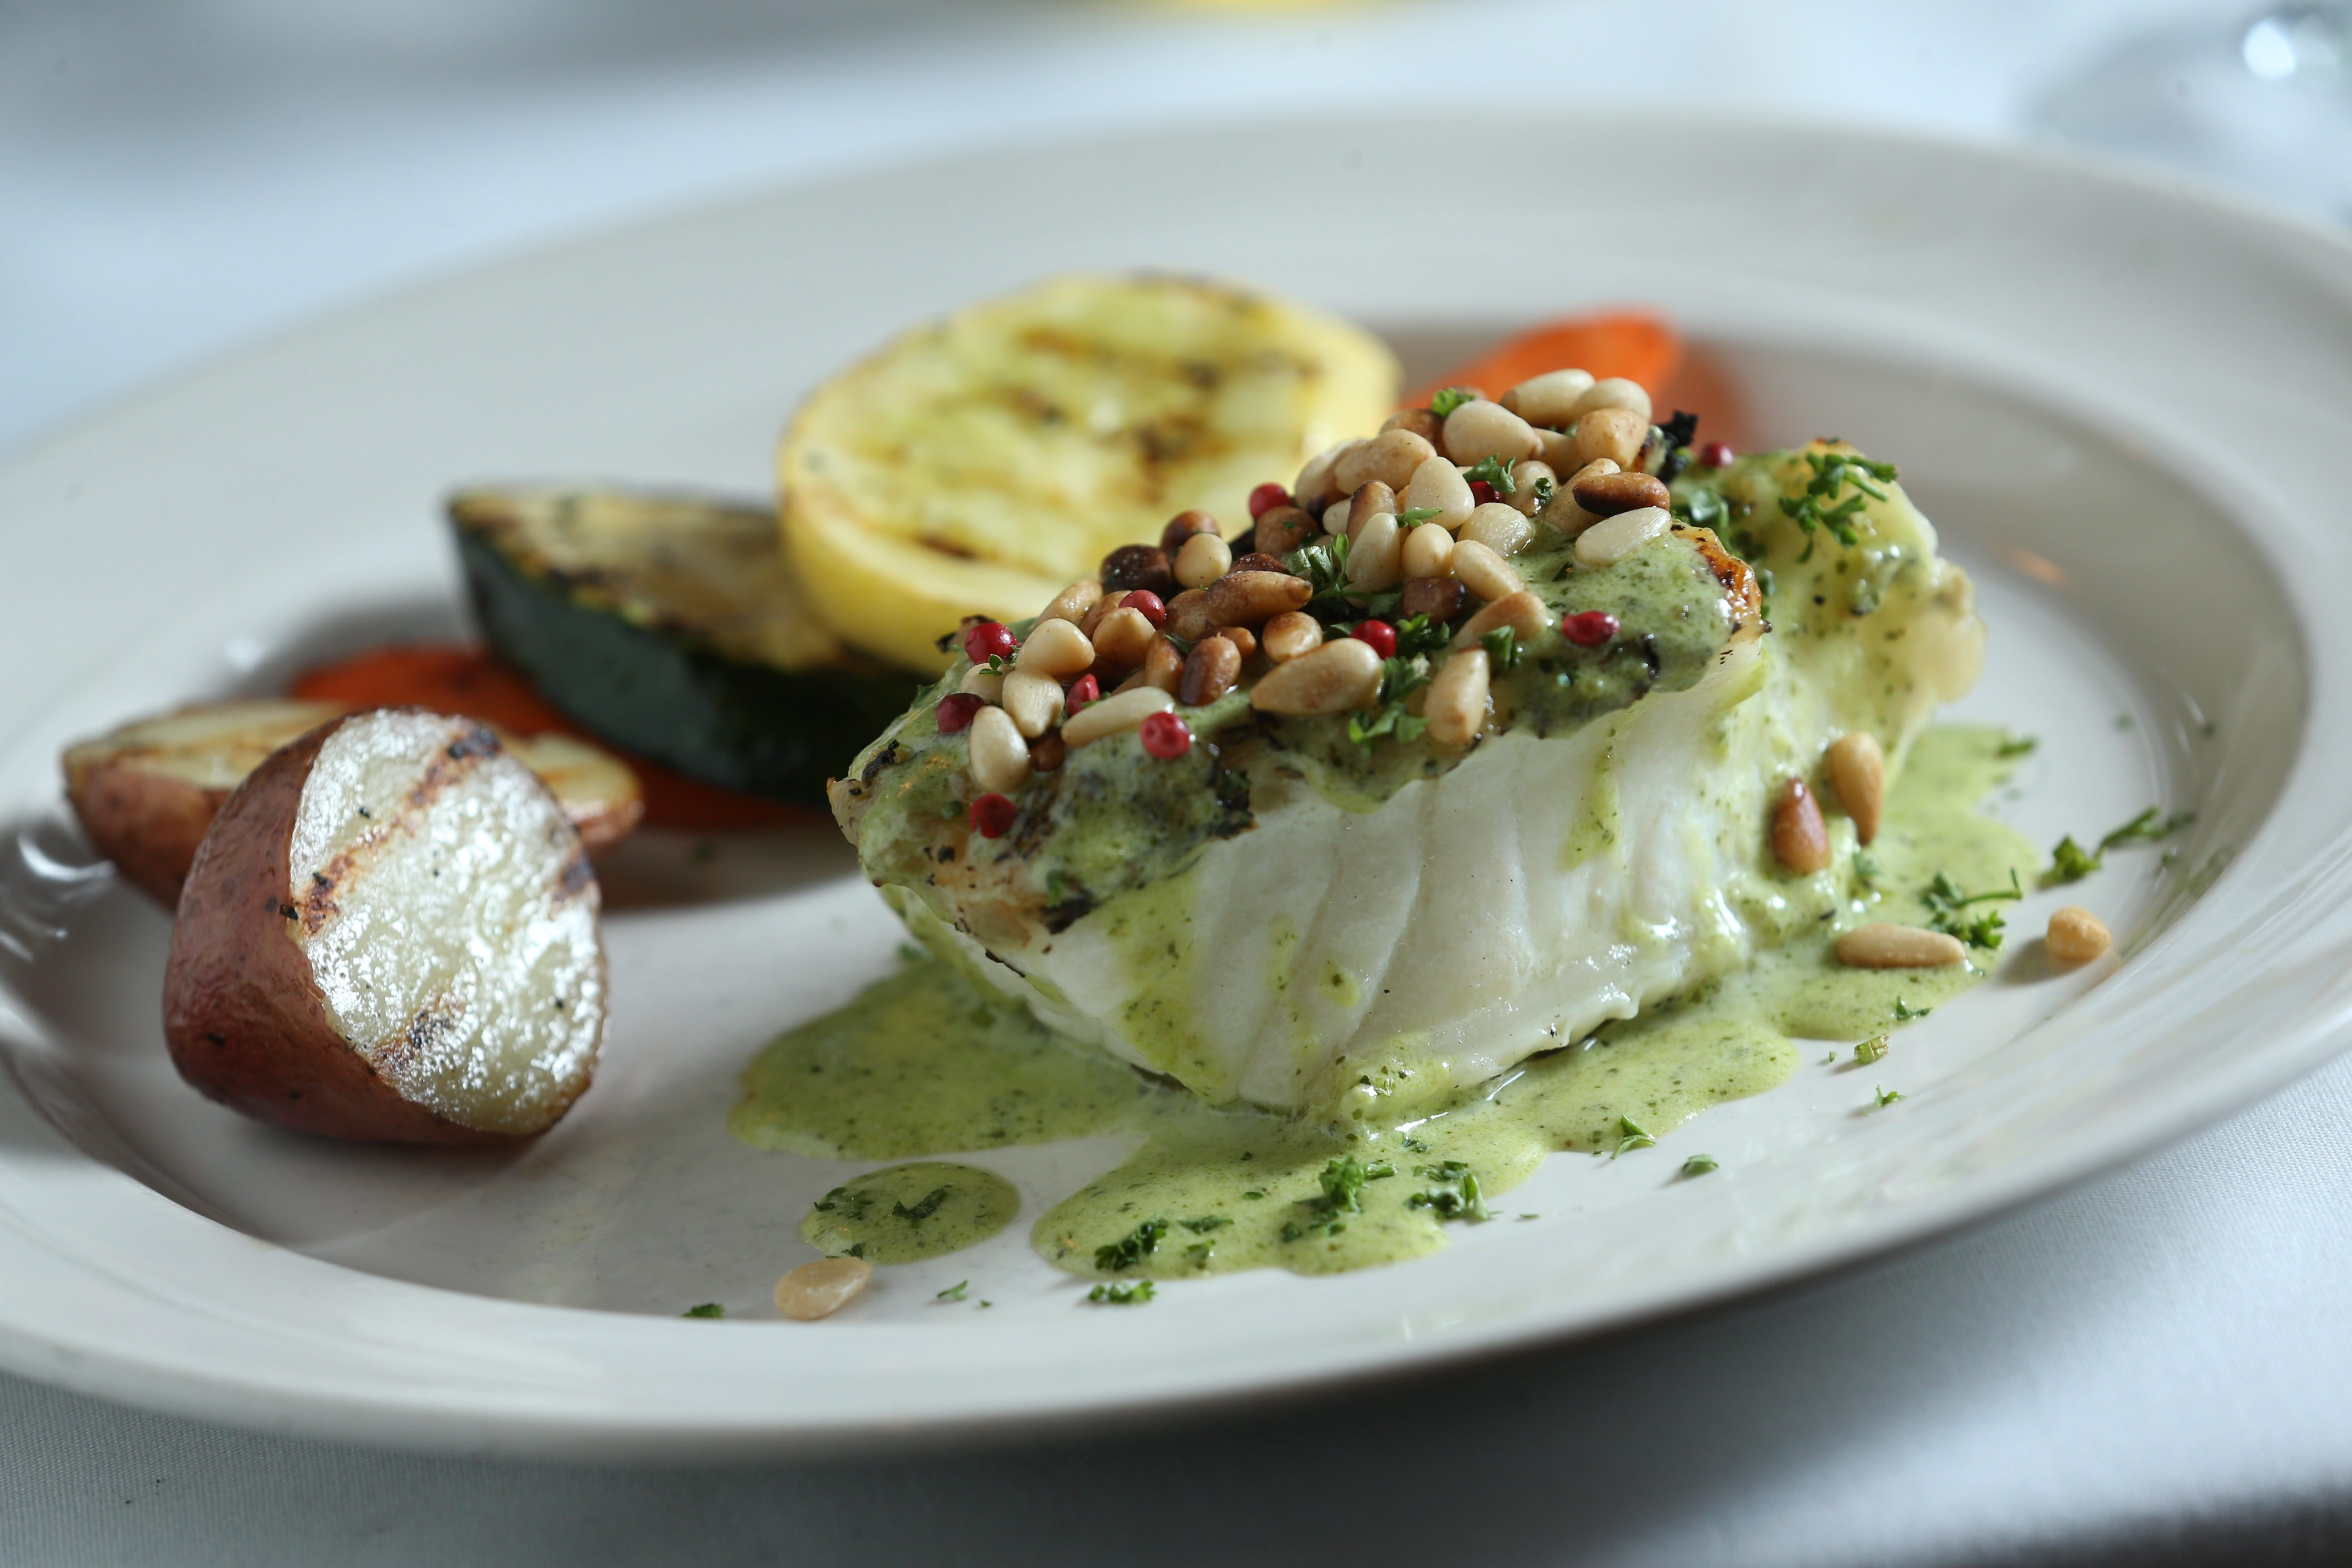 Fish filet is pan-seared with white wine, lemon and herbs, finished on the grill and topped with a creamy pesto sauce.